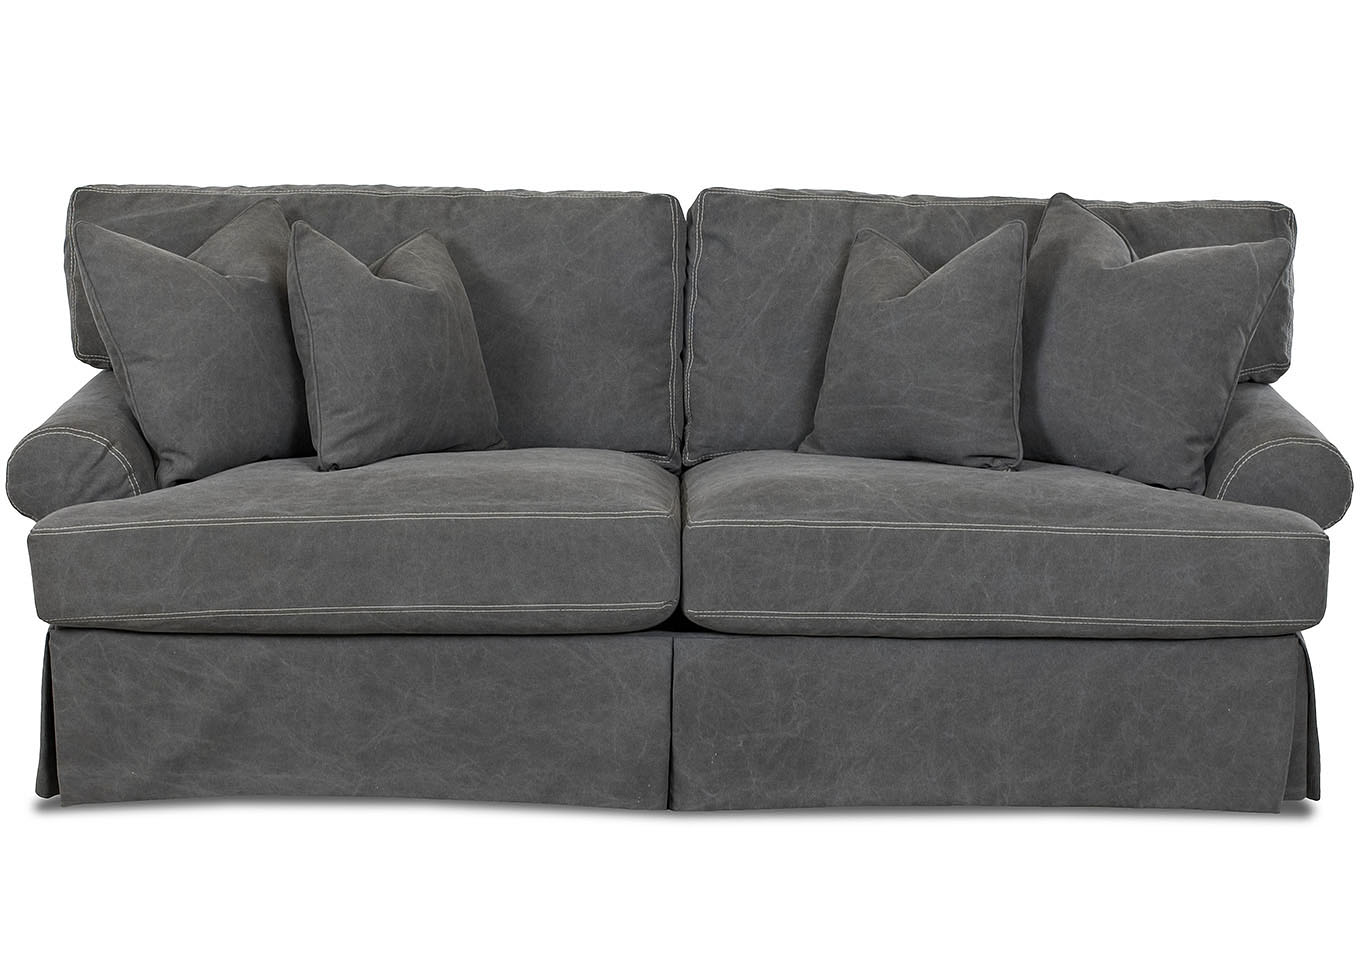 Lahoya Tibby Pewter Microfiber Sofa,Klaussner Home Furnishings